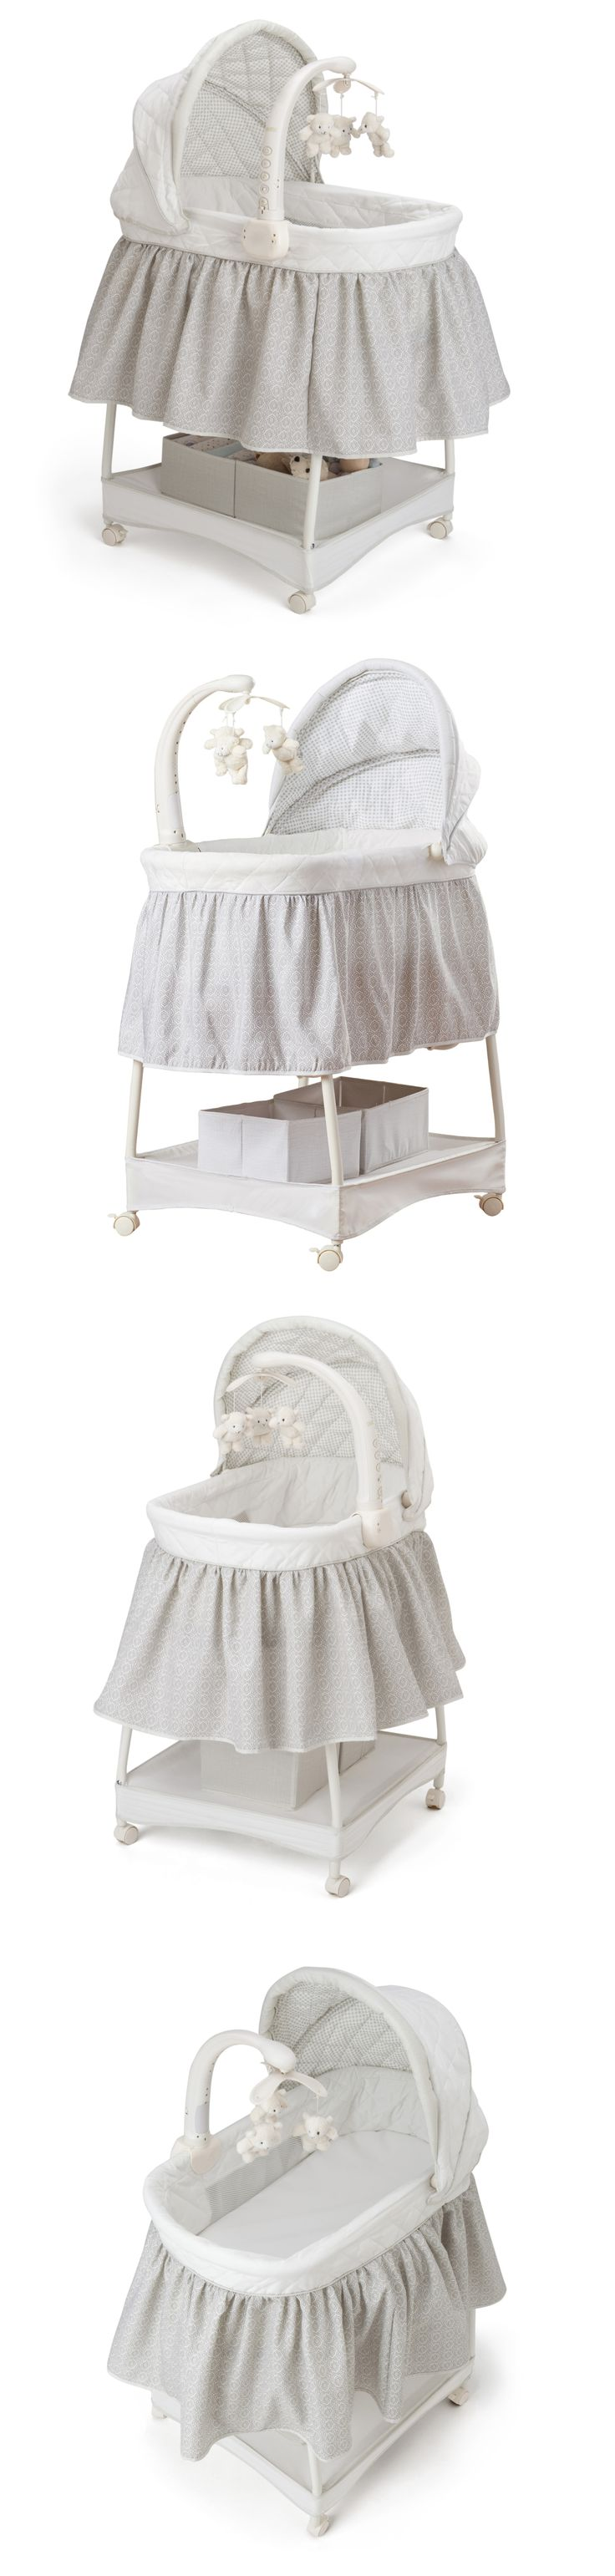 Baby Nursery: Baby Bassinet Crib Cradle Bed Portable Infant Nursery Sleeper Smooth Glide New -> BUY IT NOW ONLY: $130.49 on eBay!